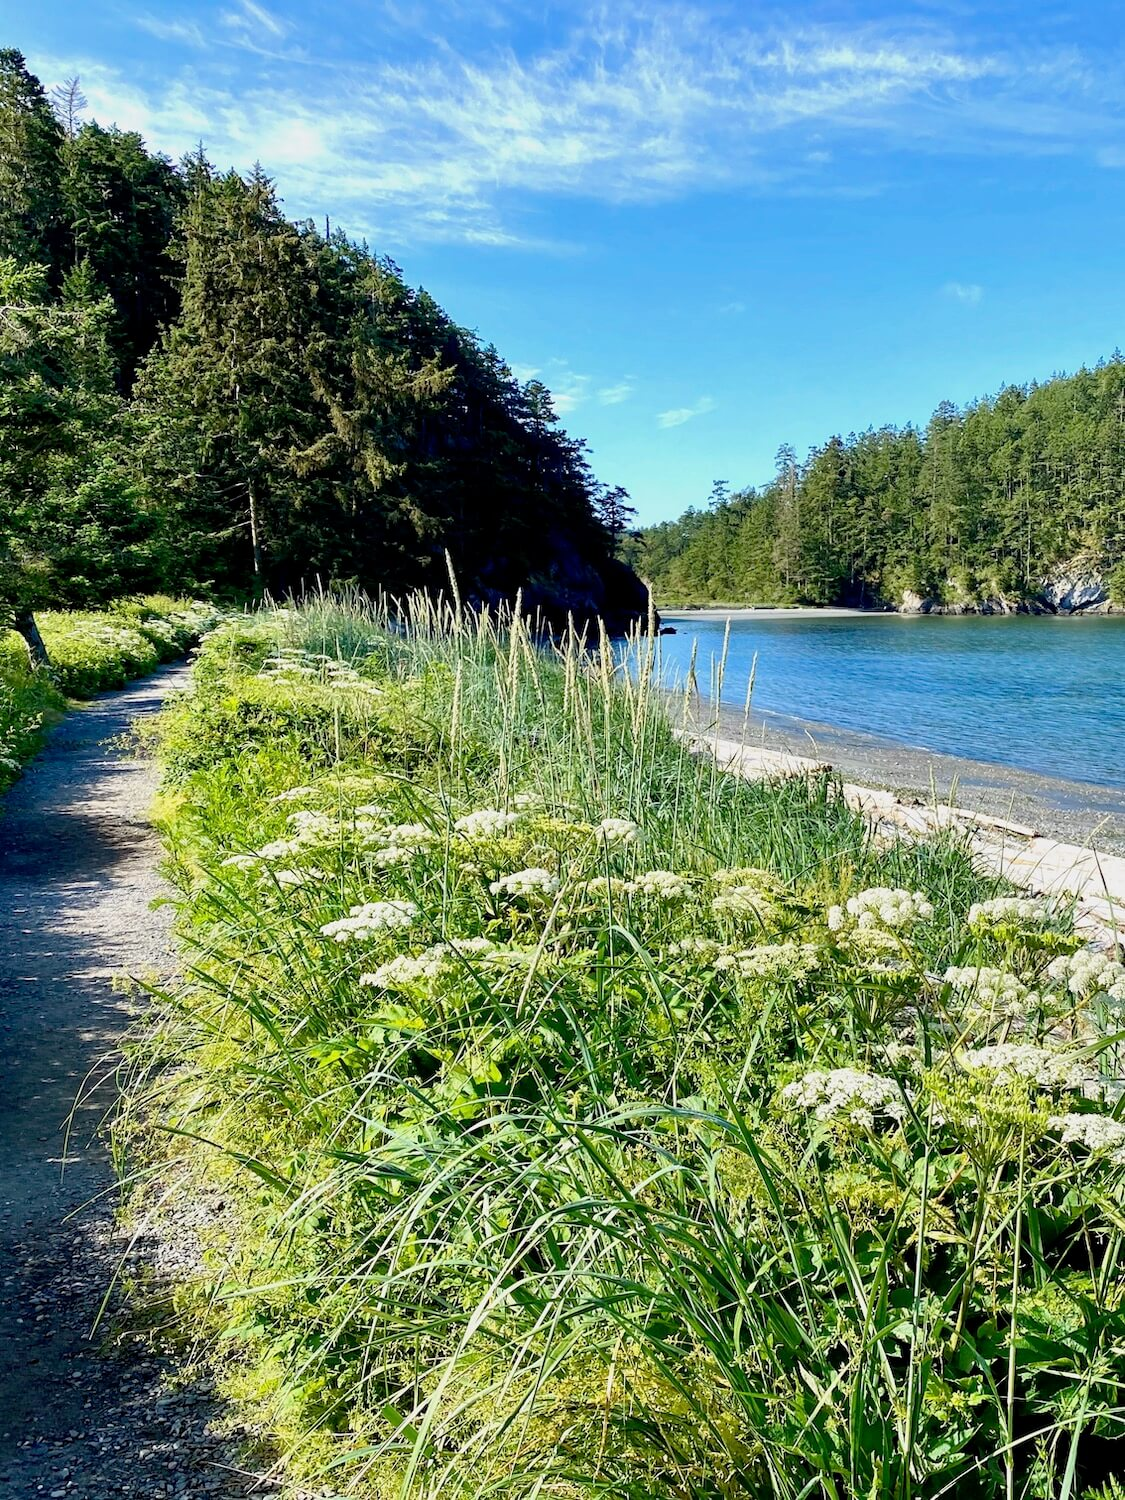 A trail on gravel leads through high brush that consists of tall coastal grasses and big bright white flowers.  In the distance is a hill with dark green firs.  The beach is rocky and the quiet body of water creates a divide for the rocky hill in the background leading to Lighthouse Point Trail in Deception Pass State Park.